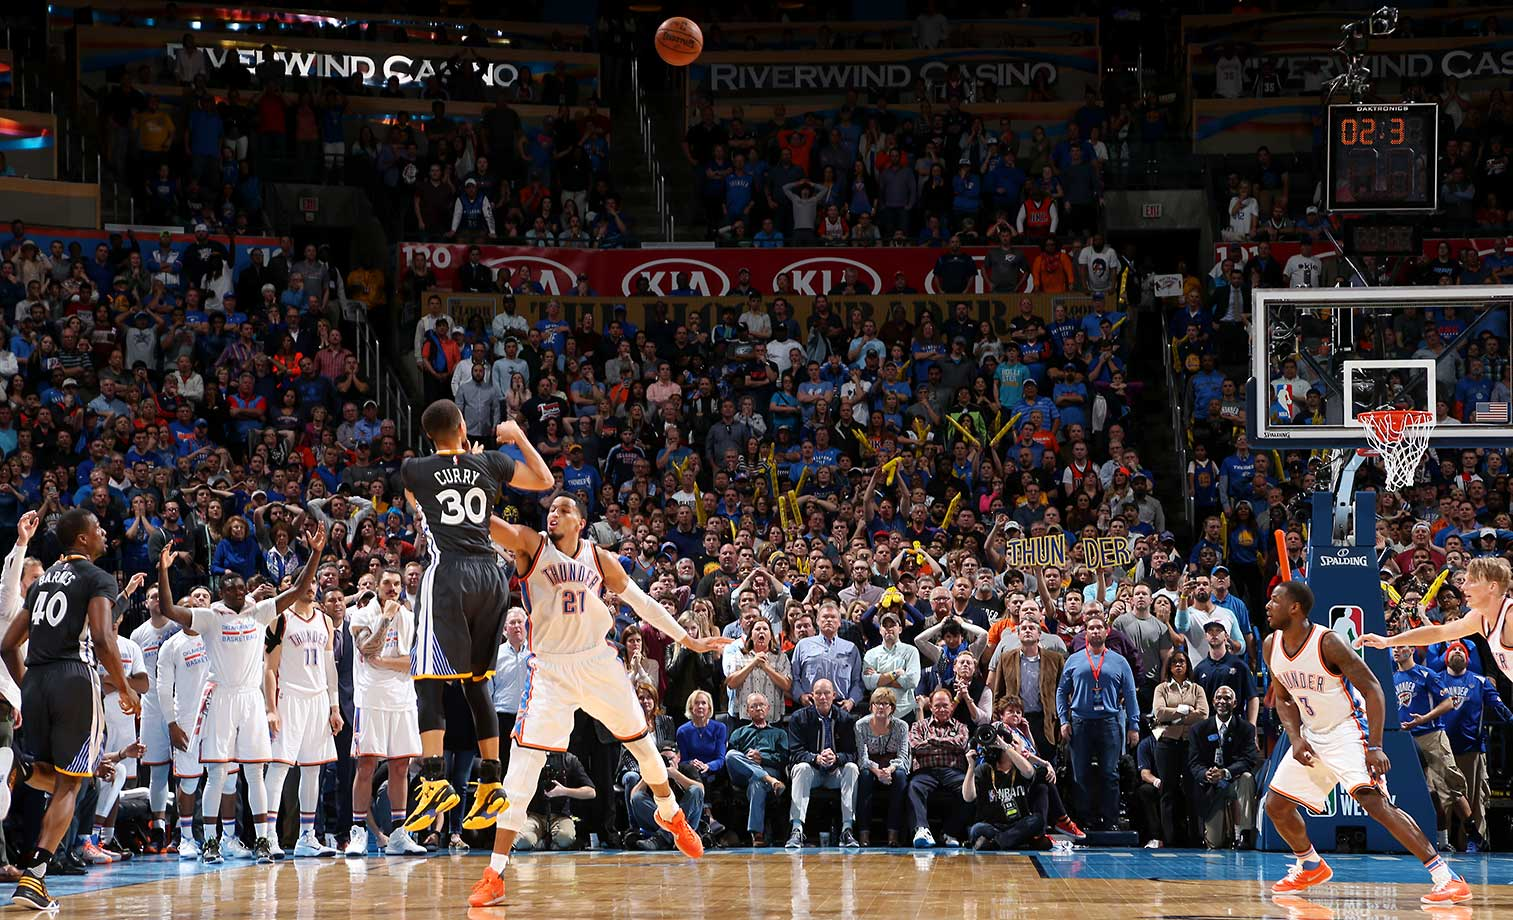 Here are some of the images that caught our eye on the sports night of Feb. 27, starting with Steph Curry's ridiculous three-pointer that lifted Golden State to an overtime win over Oklahoma City.